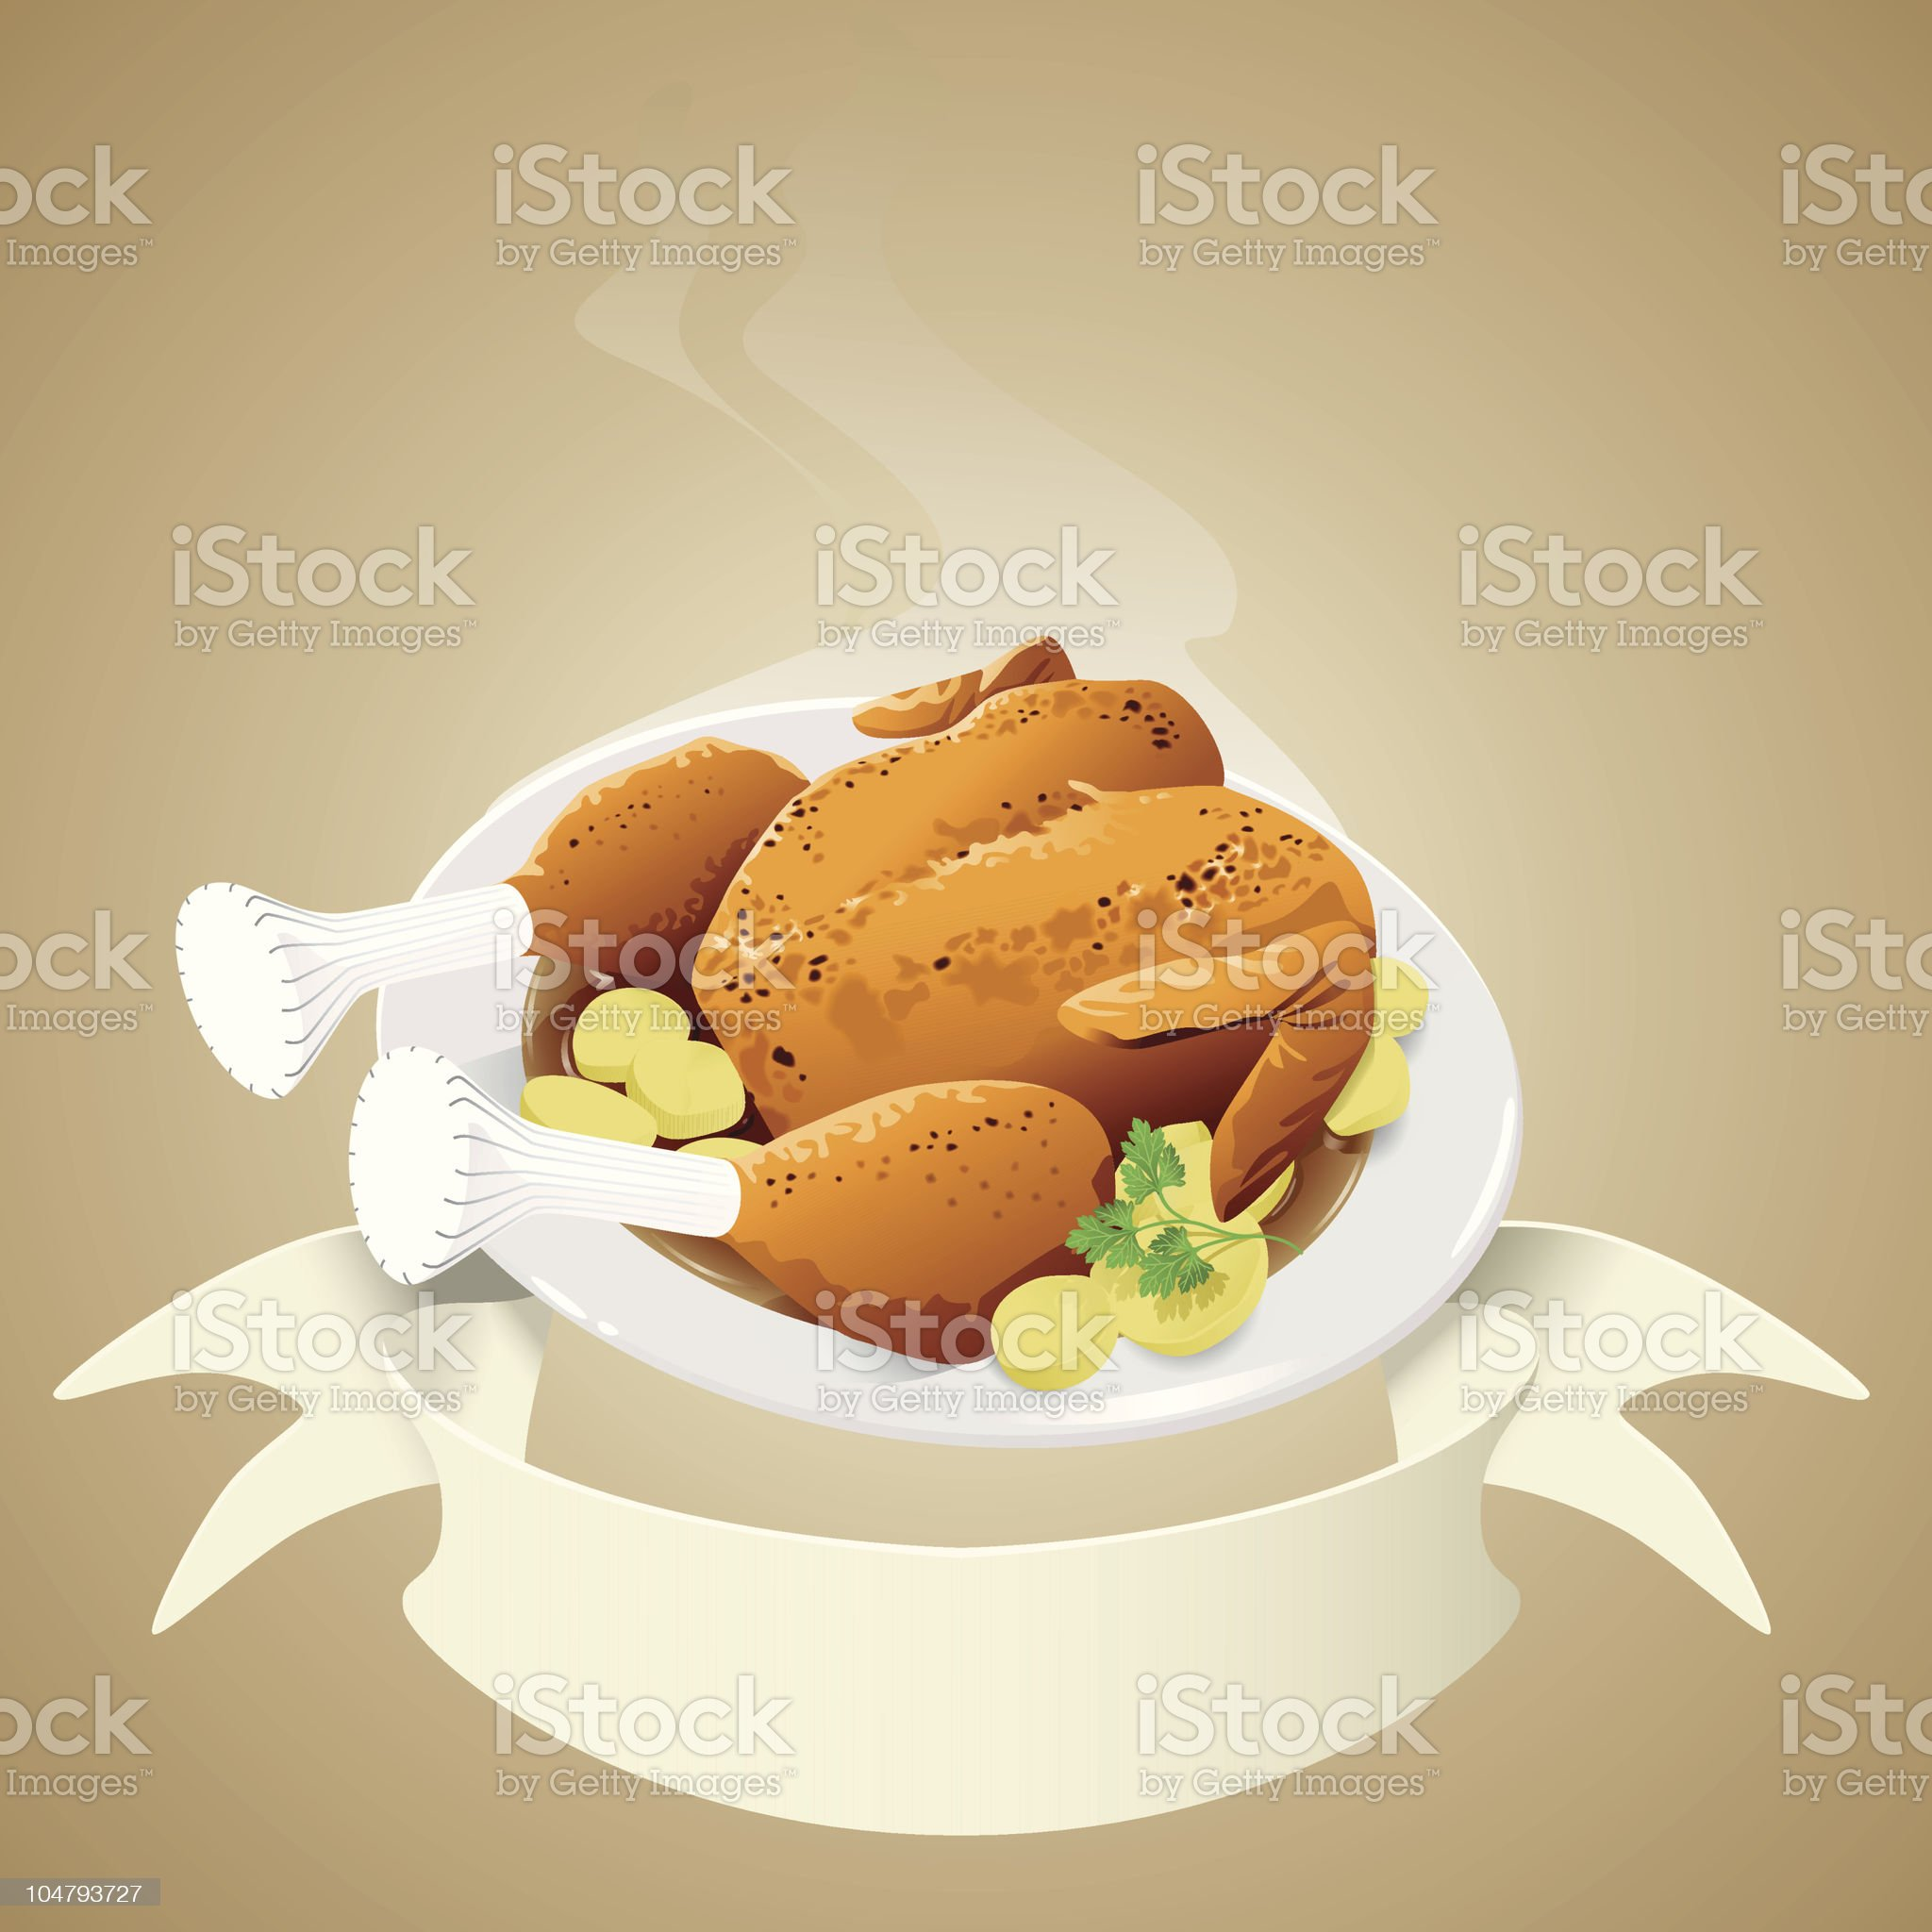 roasted chicken with banner royalty-free stock vector art